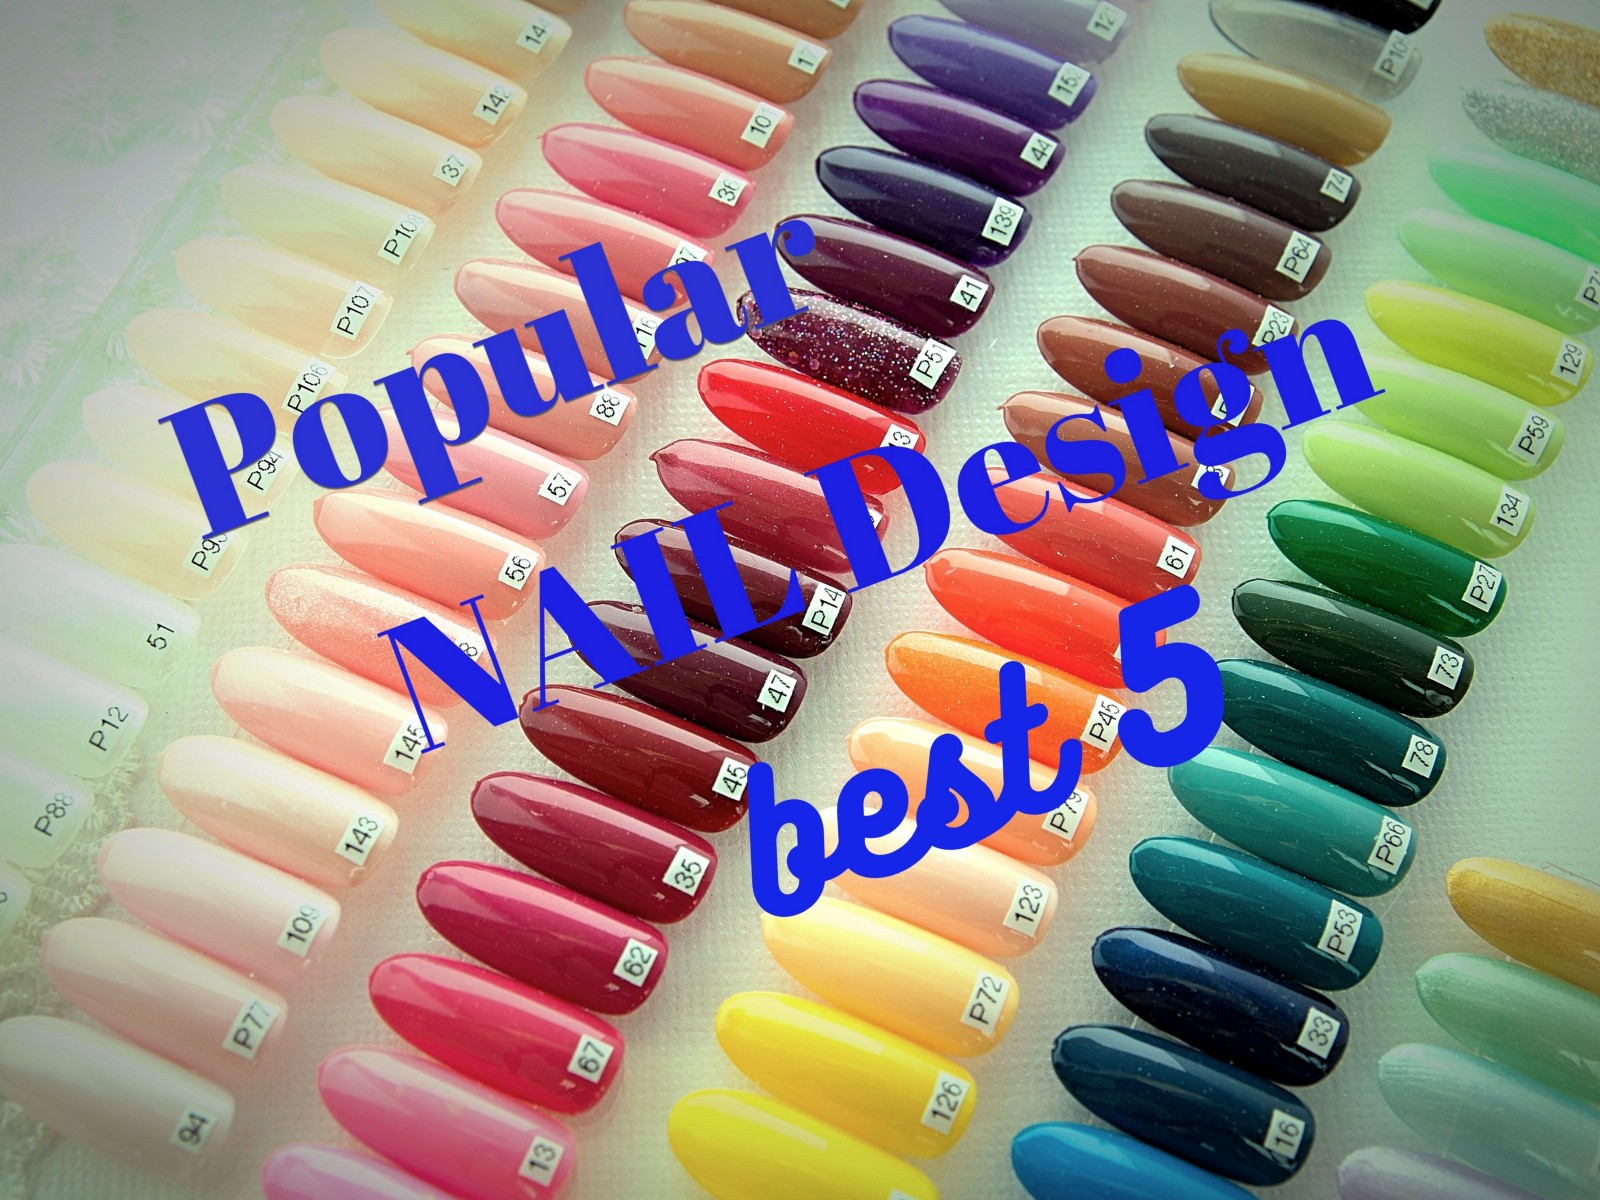 Japanese Nail Art: Top 5 Popular Designs 2019